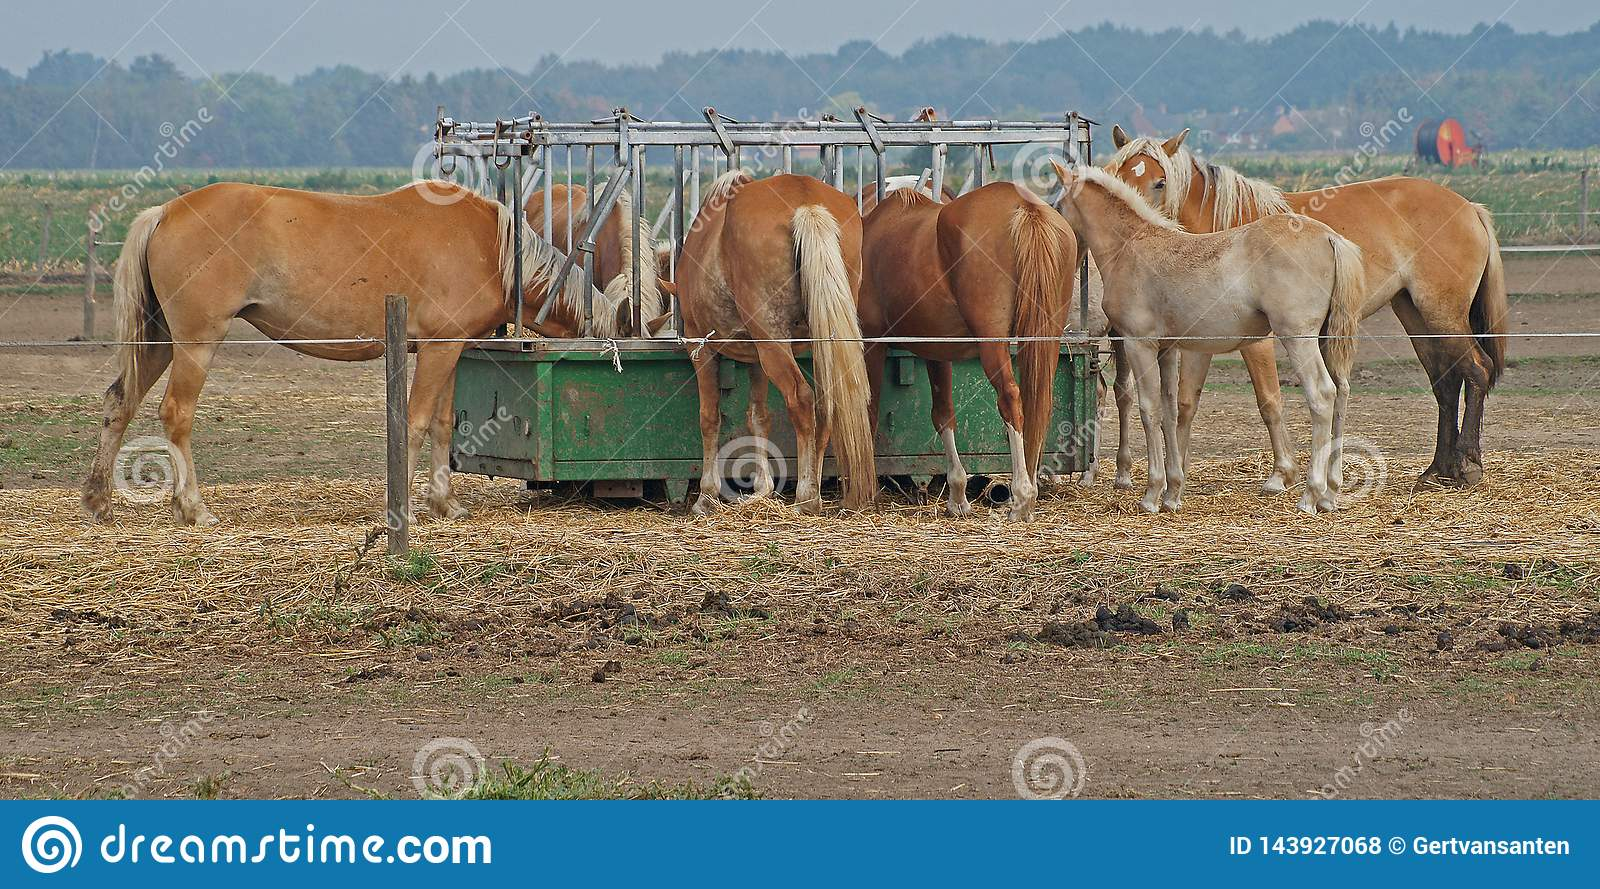 Couple of brown horses are eating from a food container